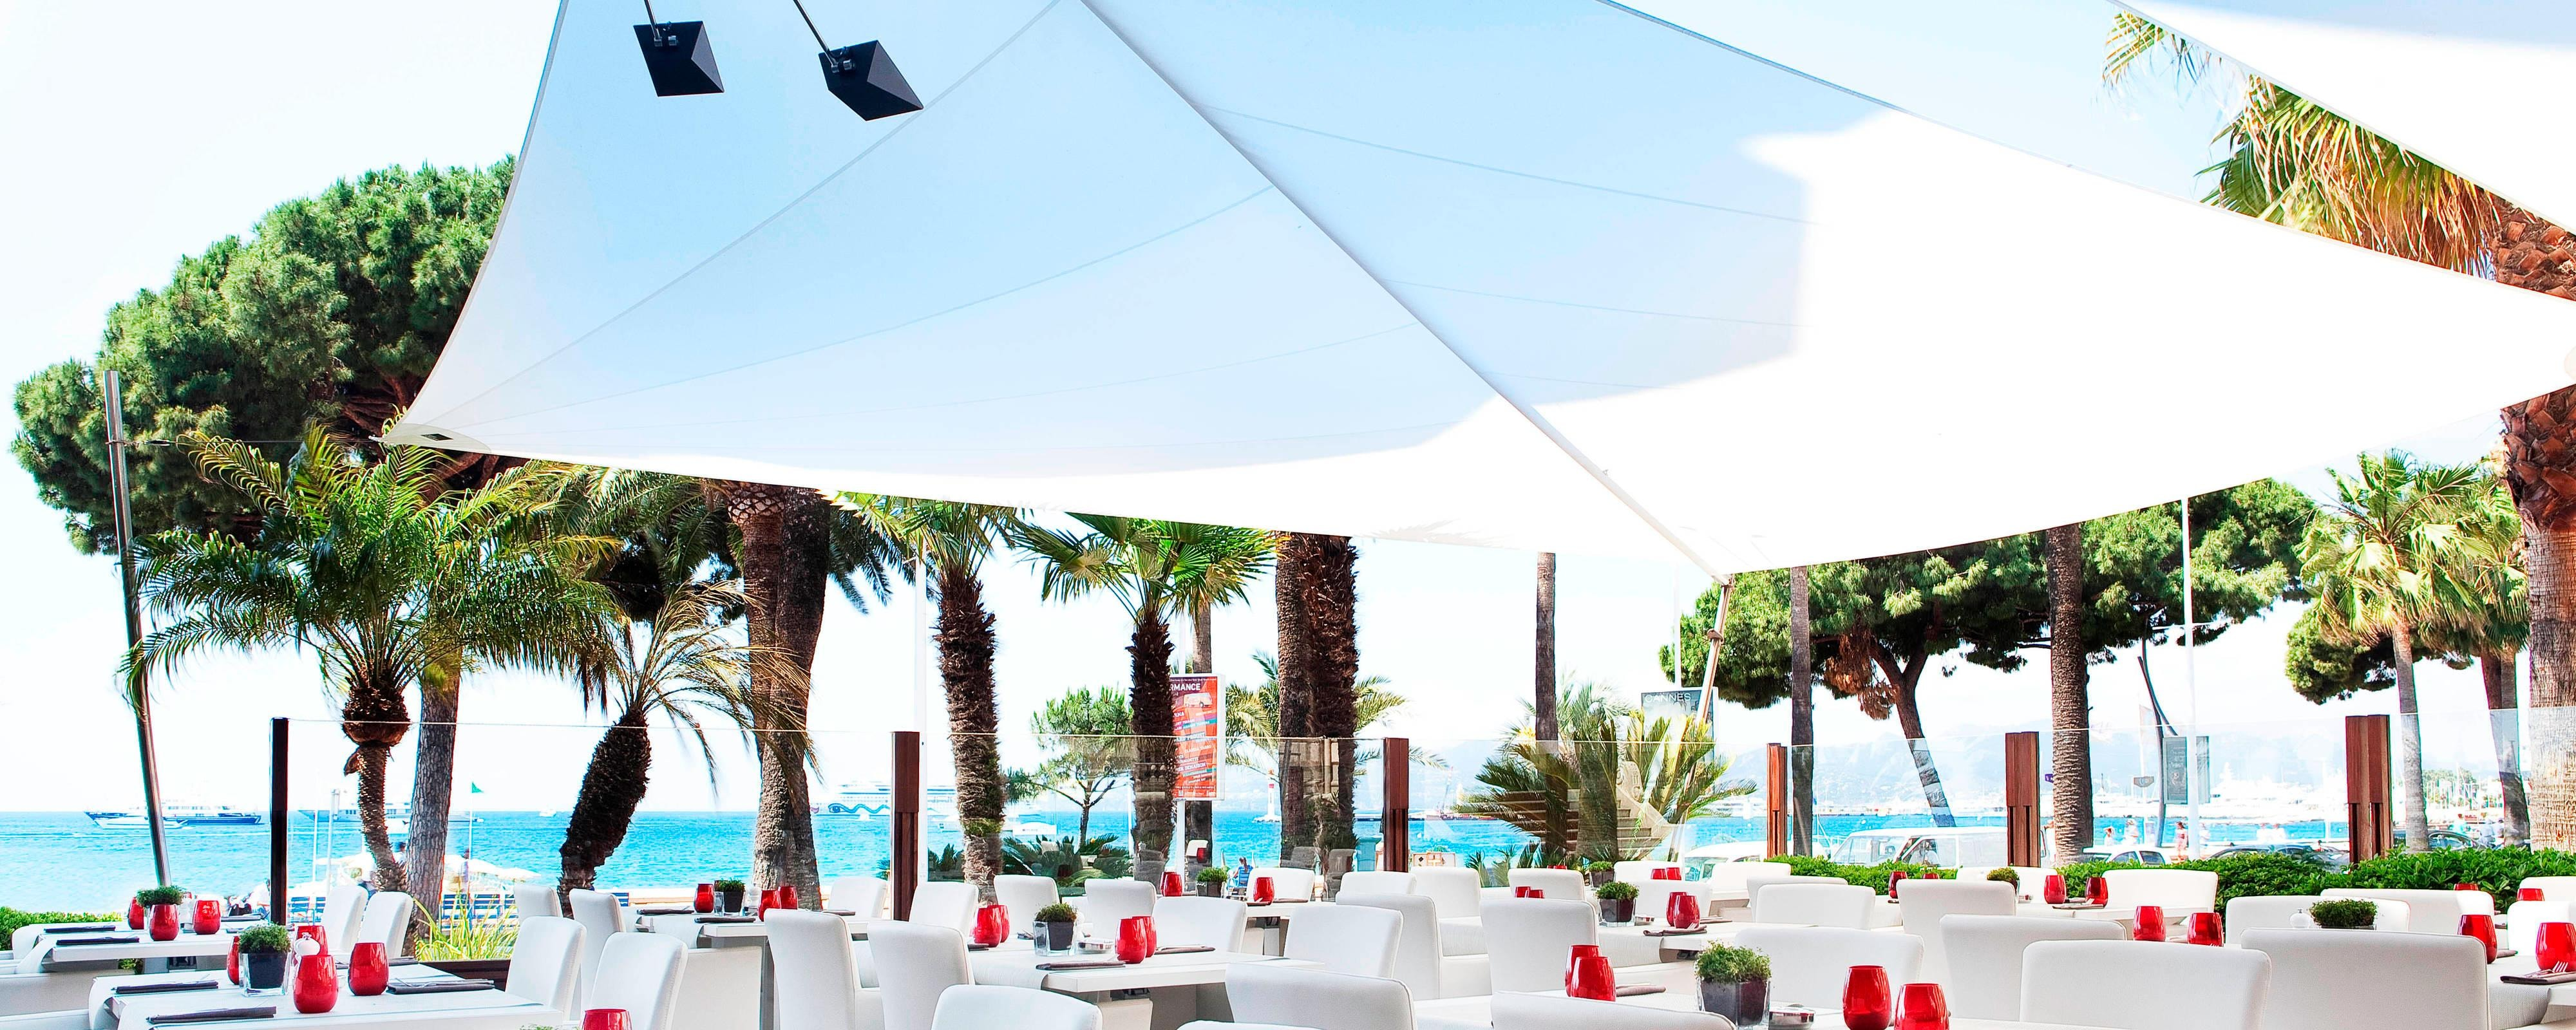 Restaurant à Cannes